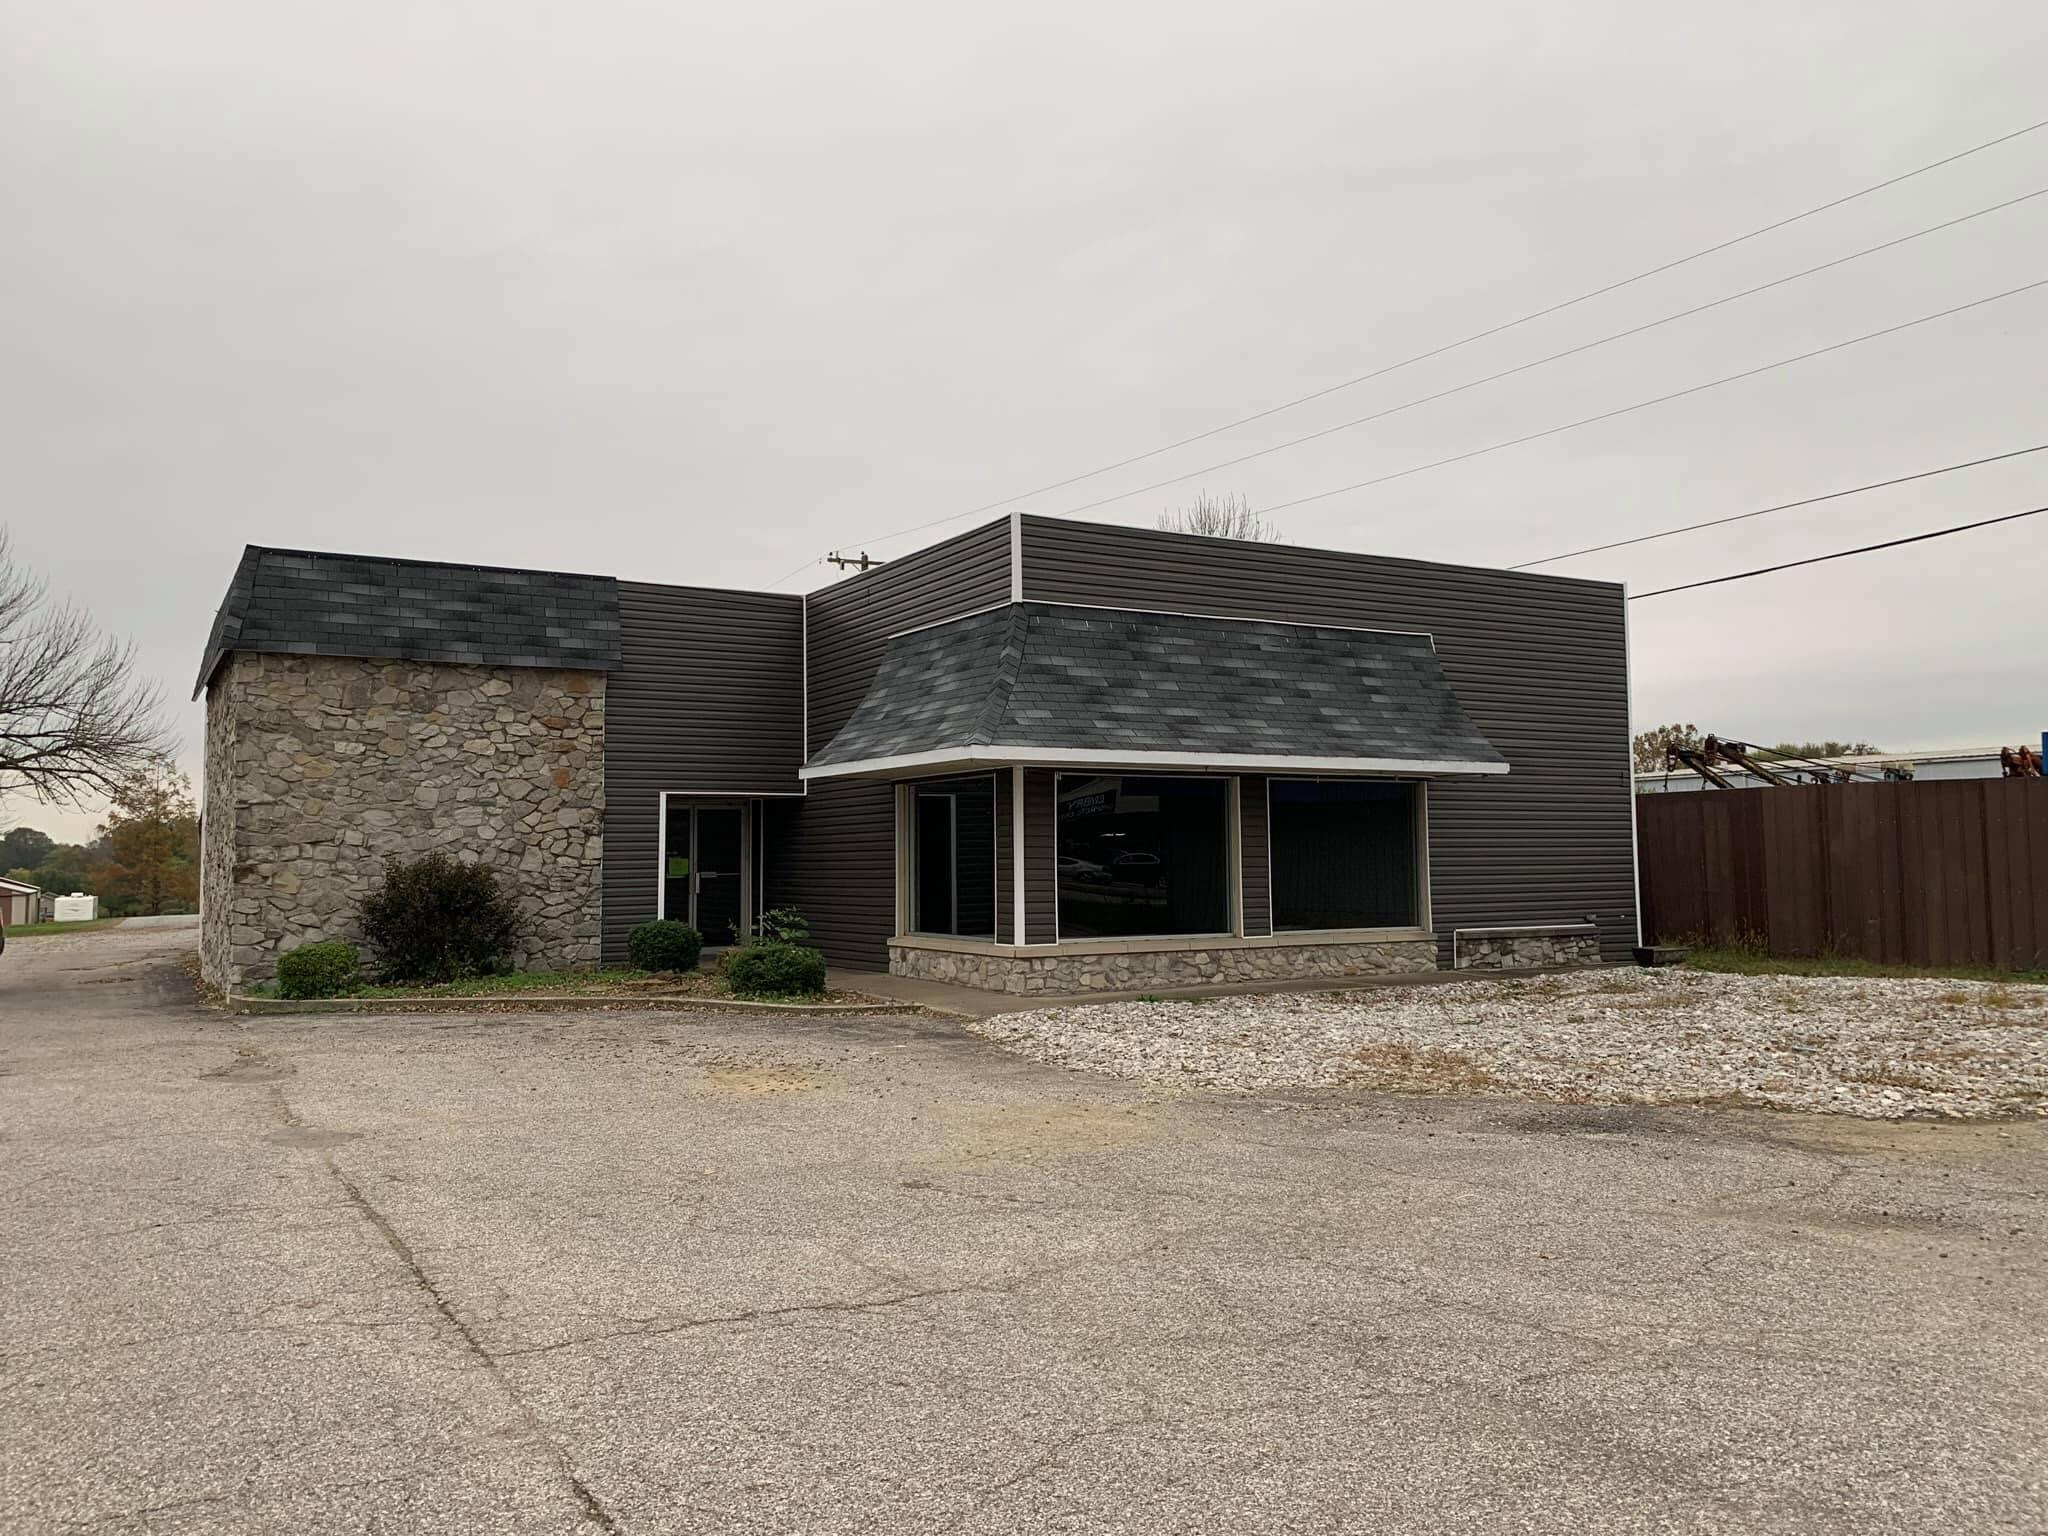 Main Photo For Commercial Space in Beaver Dam For Lease